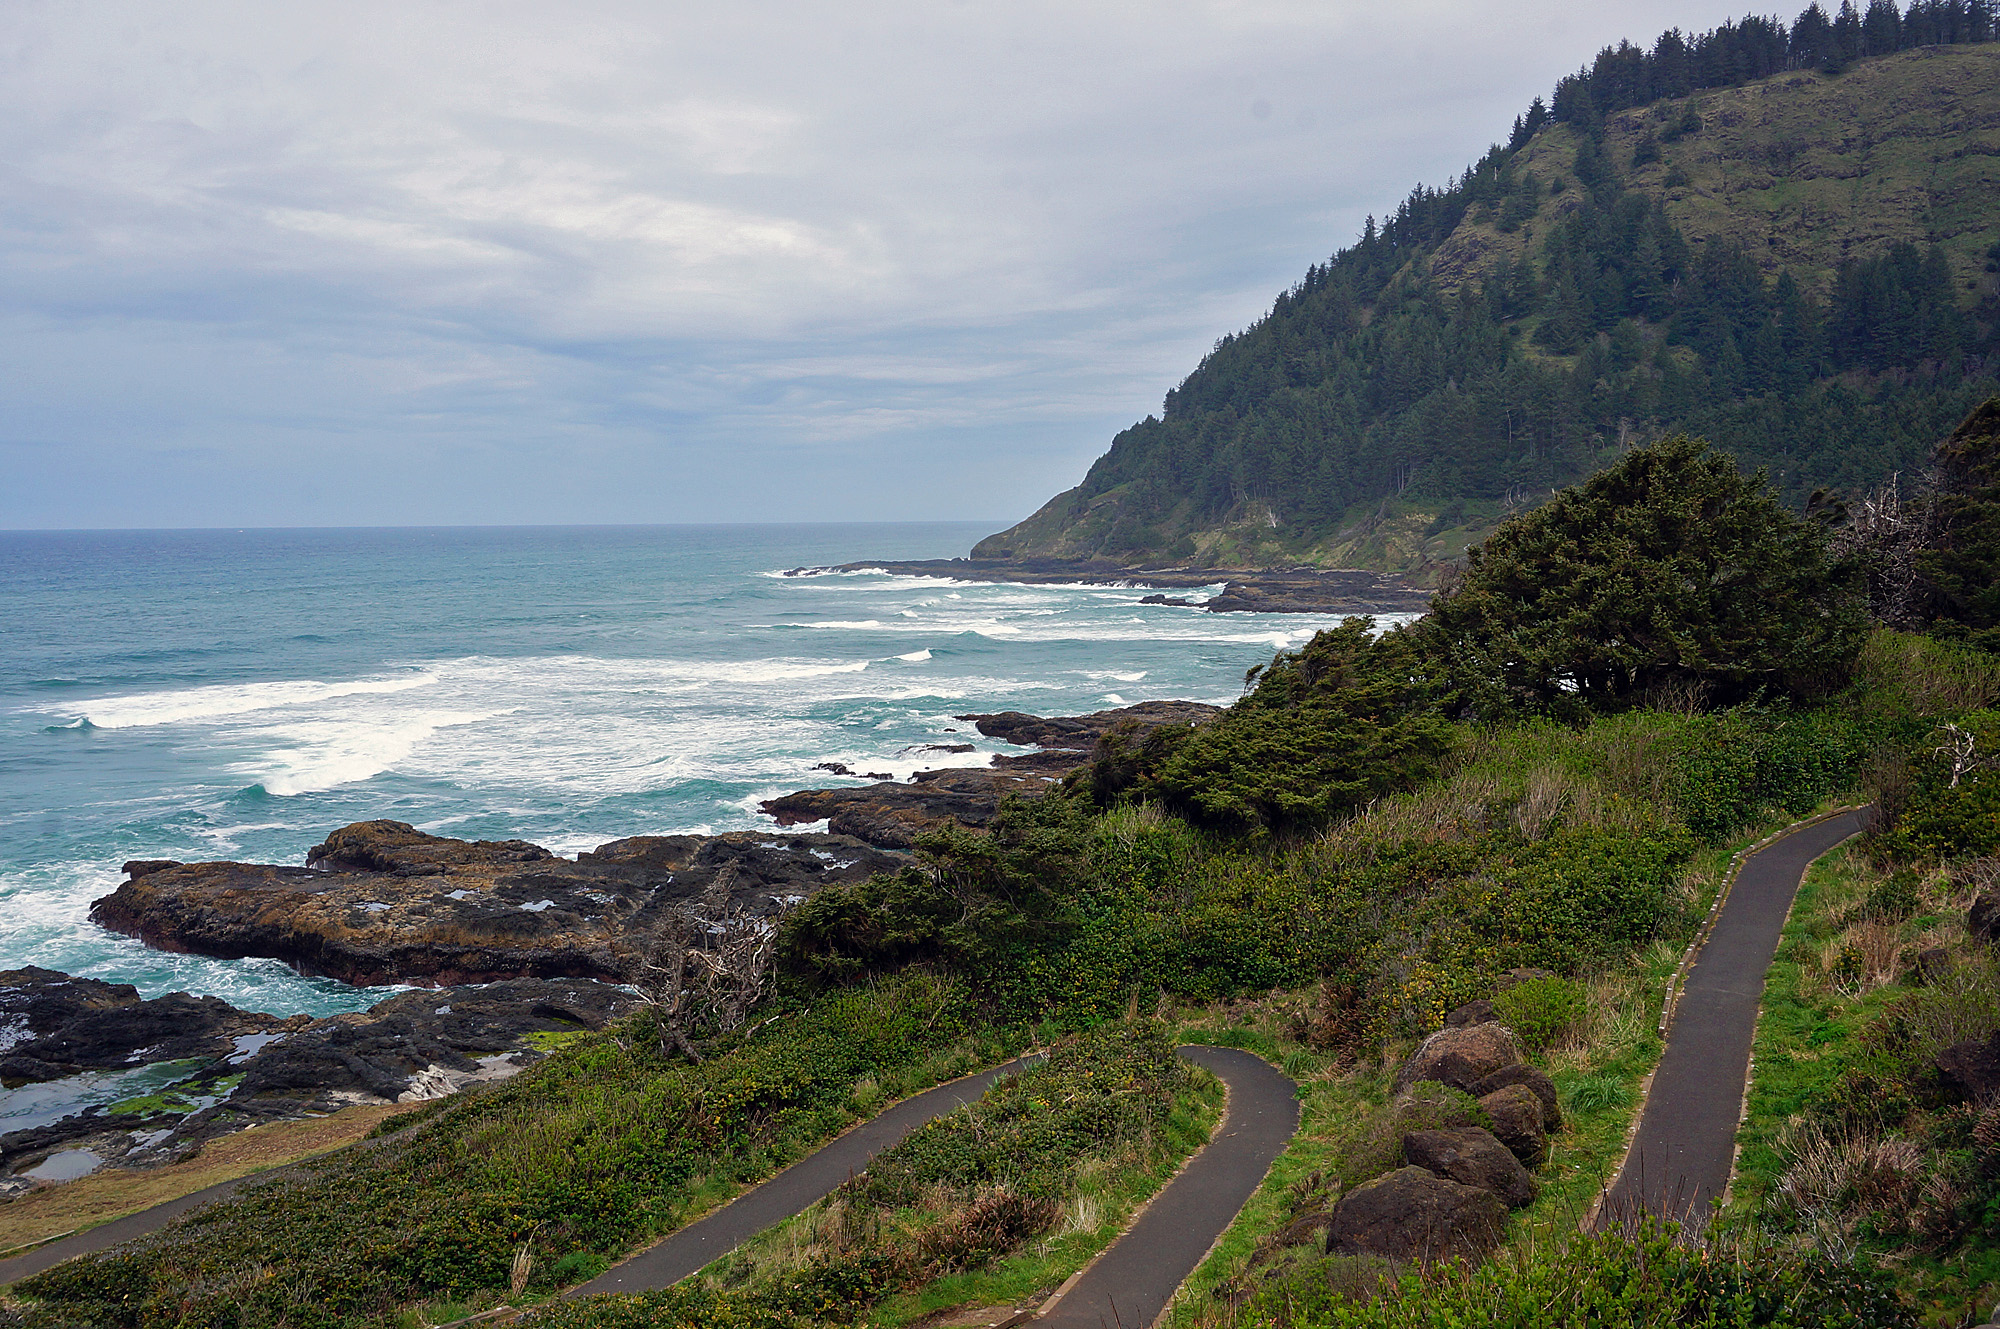 Image of Cape Perpetua trails along the coastline.